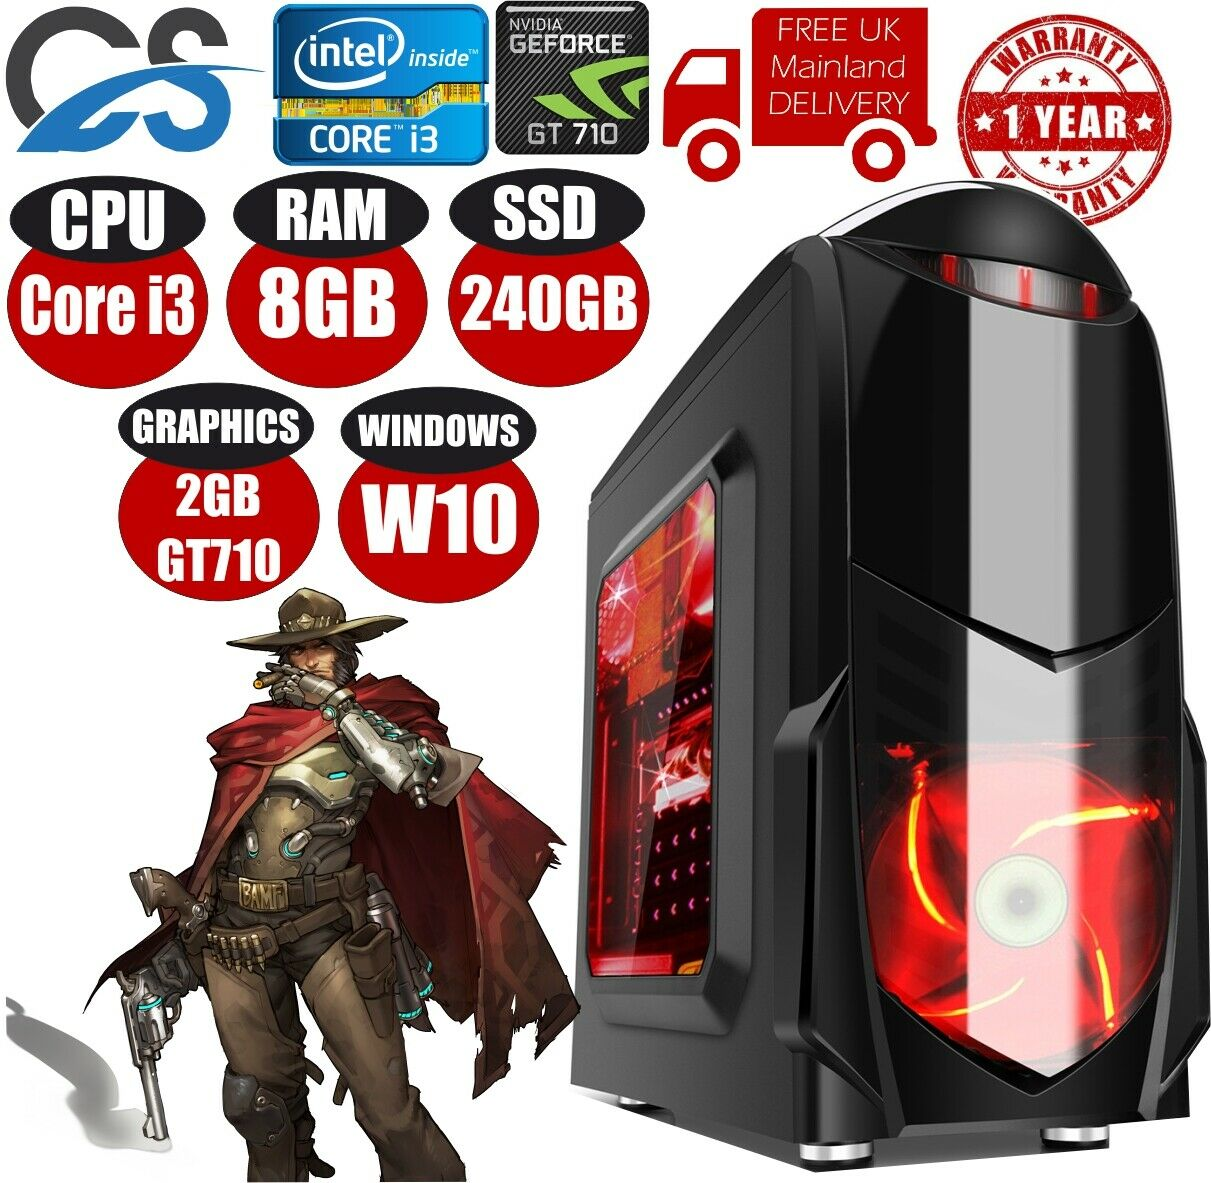 Computer Games - FAST Gaming Computer PC Intel Core i3 8GB 240GB SSD Windows 10 2GB GT710